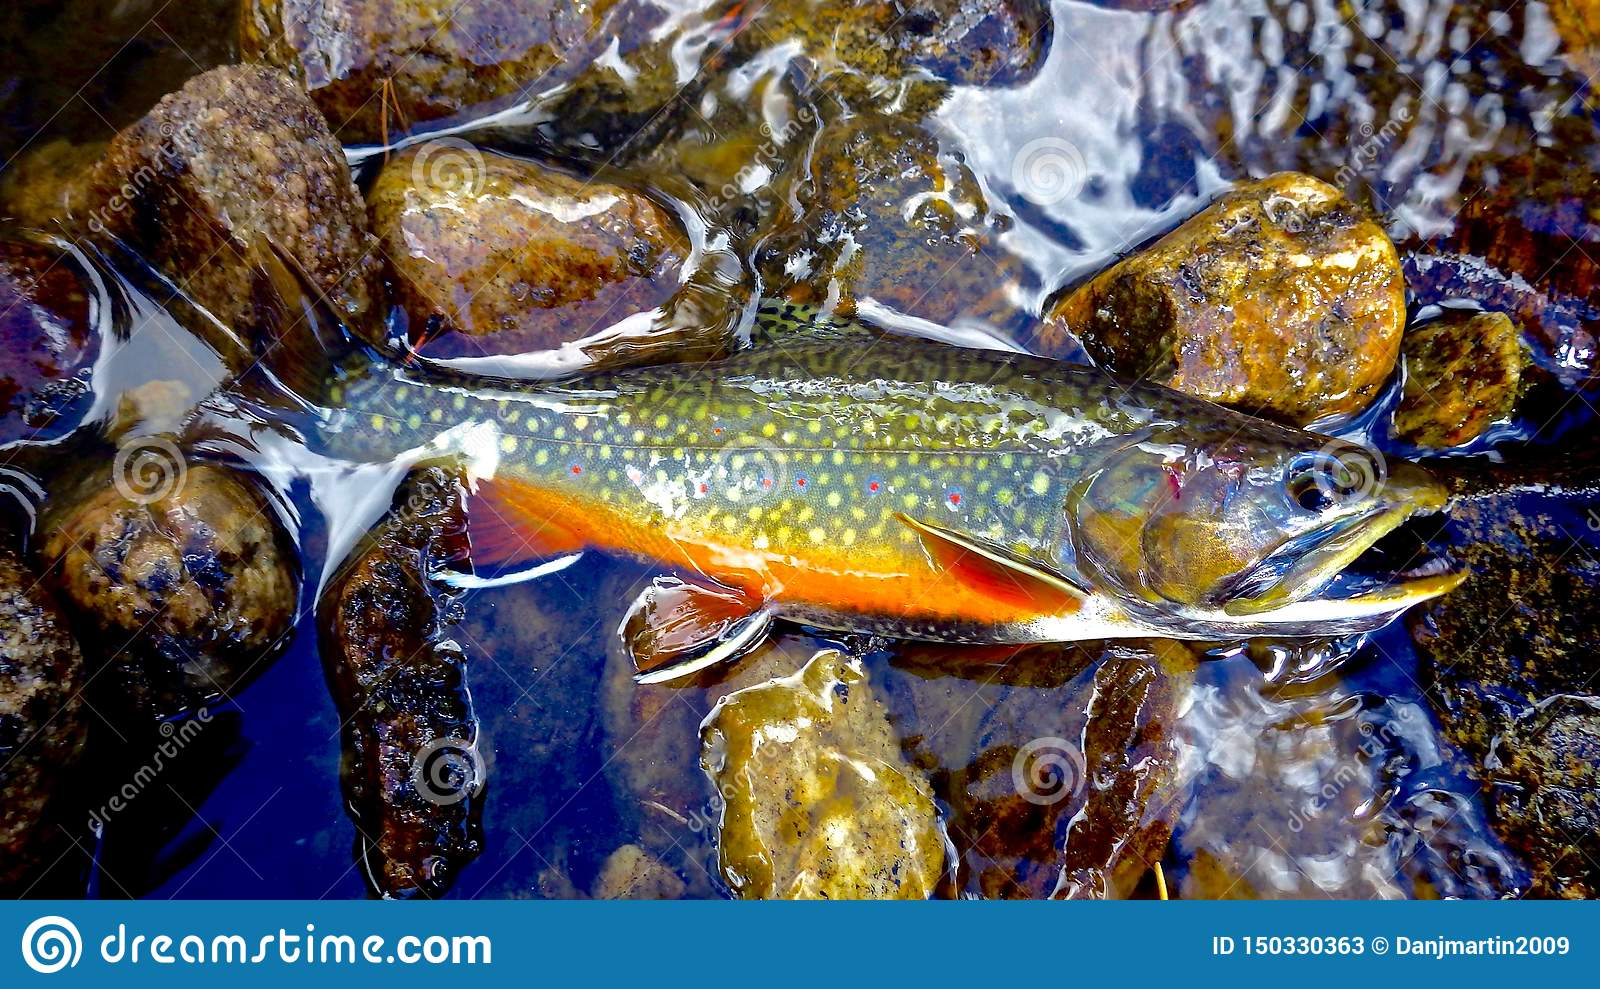 1 715 Brook Trout Photos Free Royalty Free Stock Photos From Dreamstime